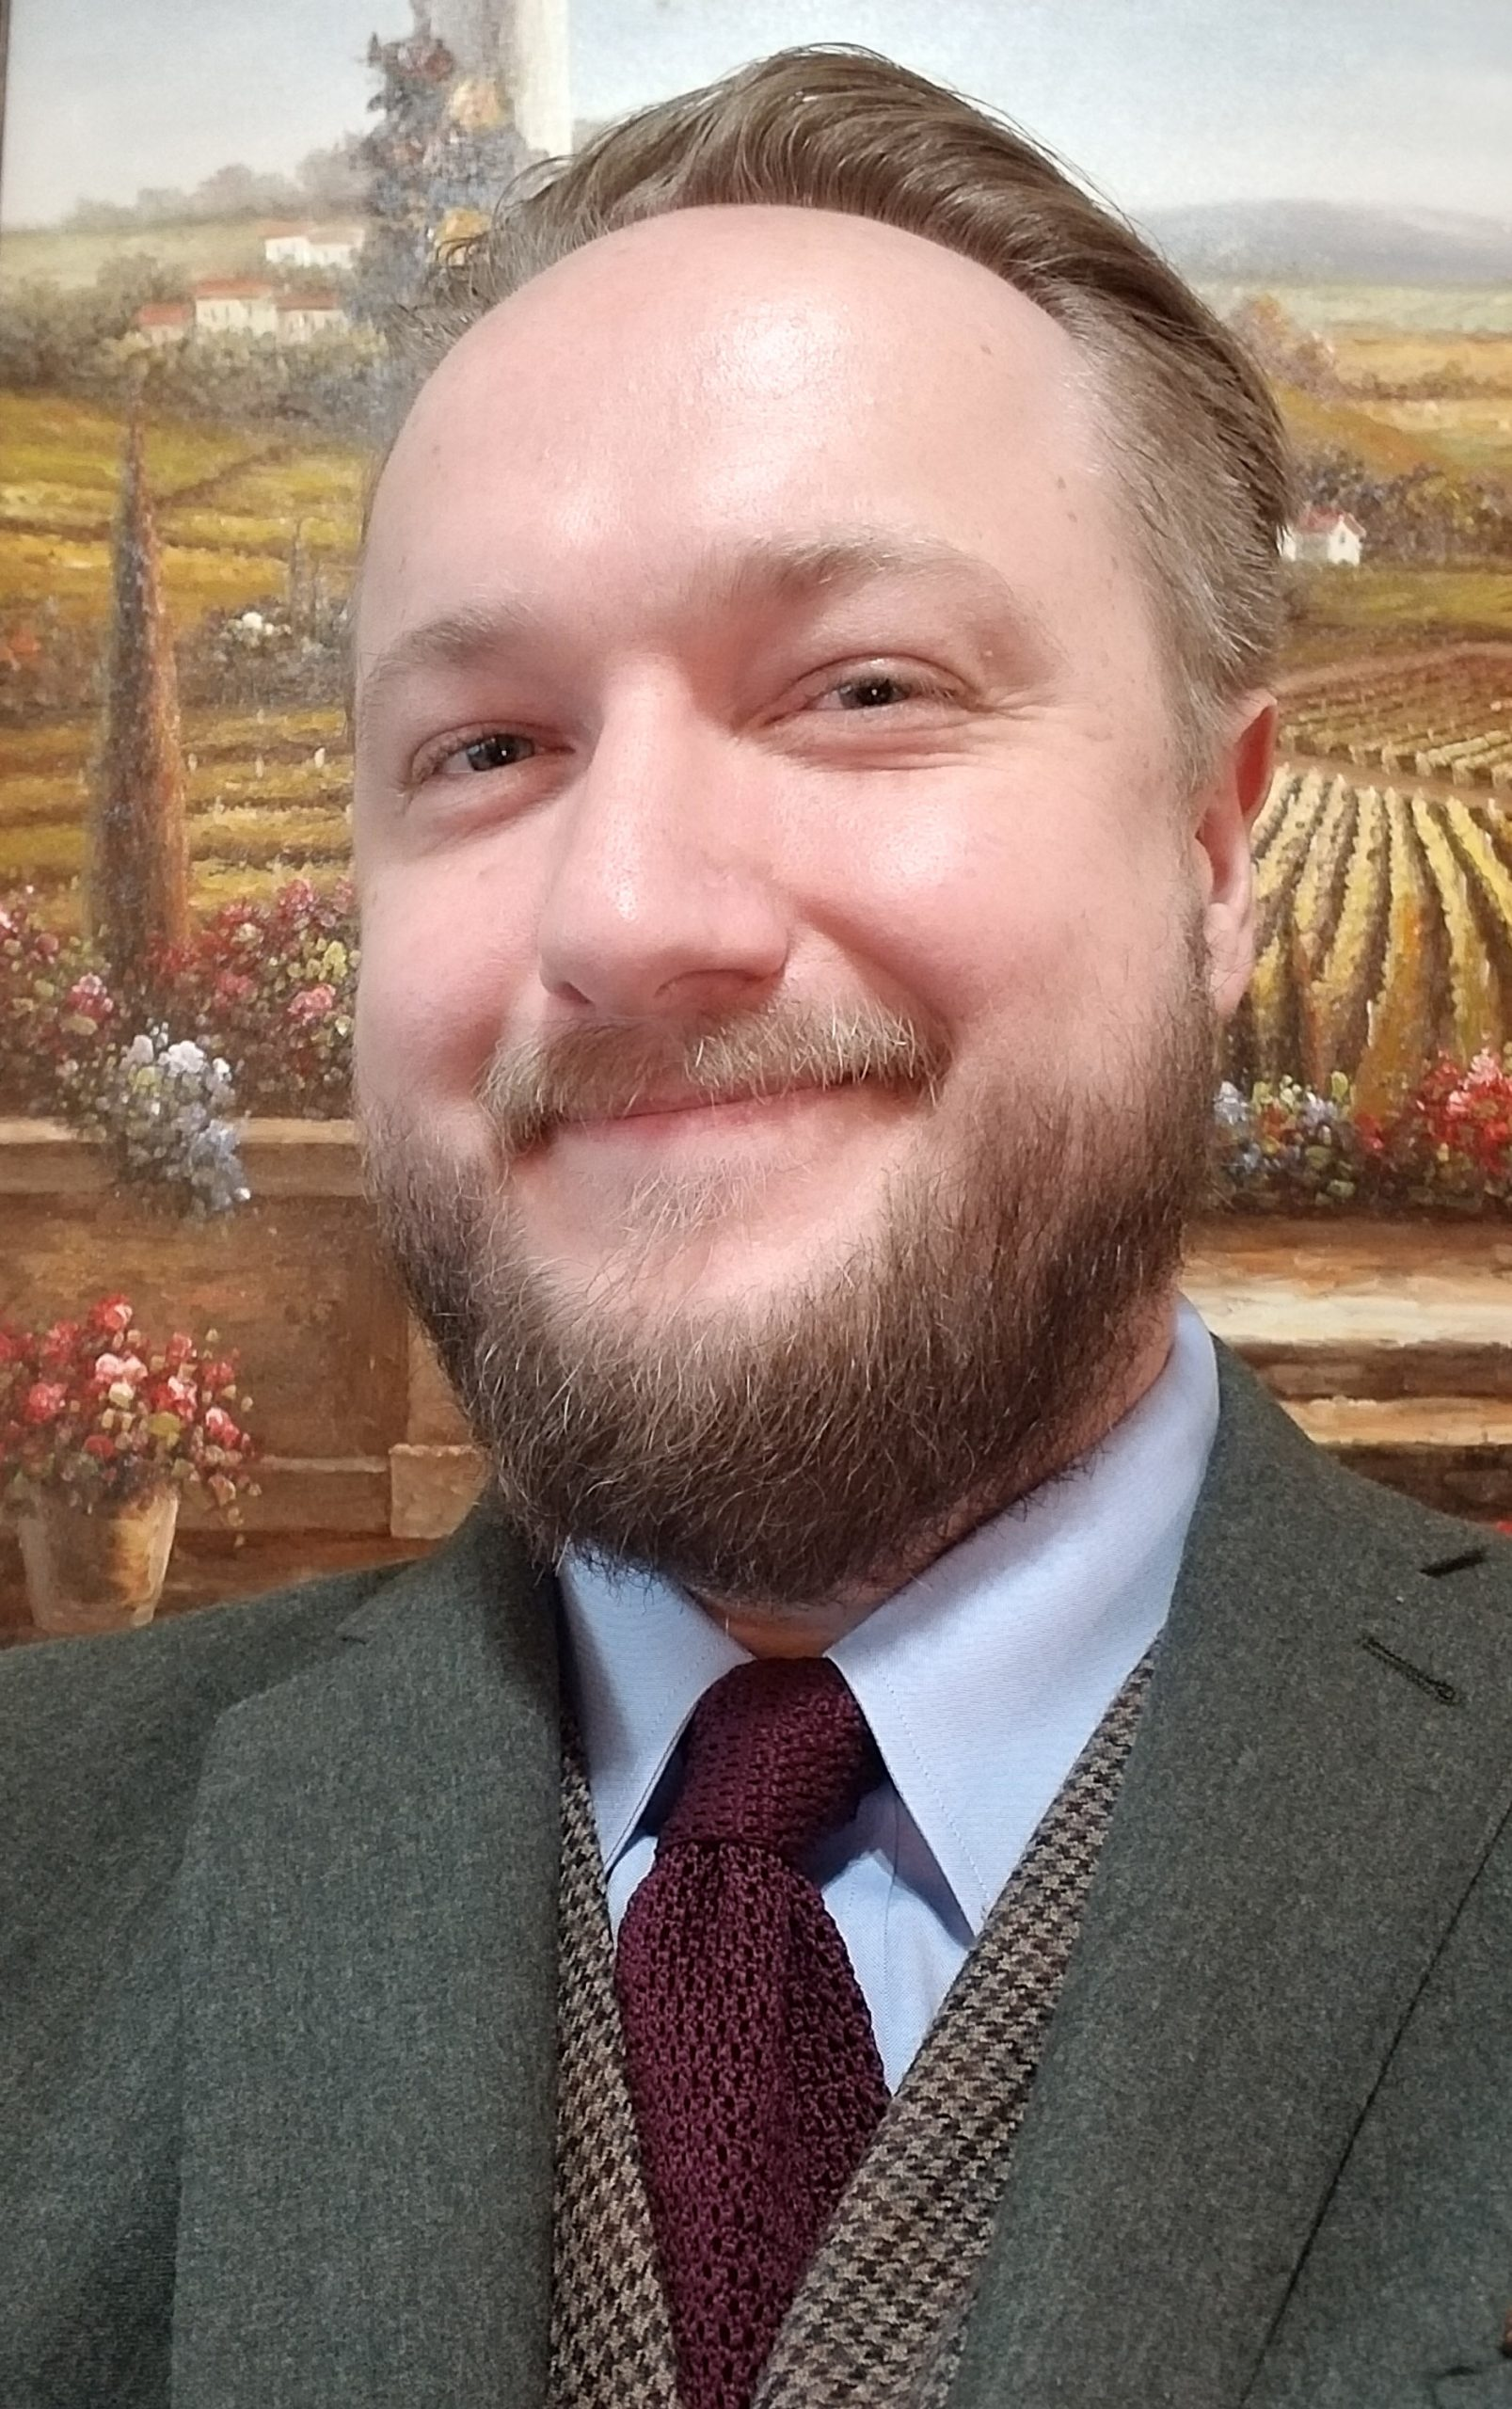 Jared Vineyard, PhD – Dissertation Consultant and Statistician